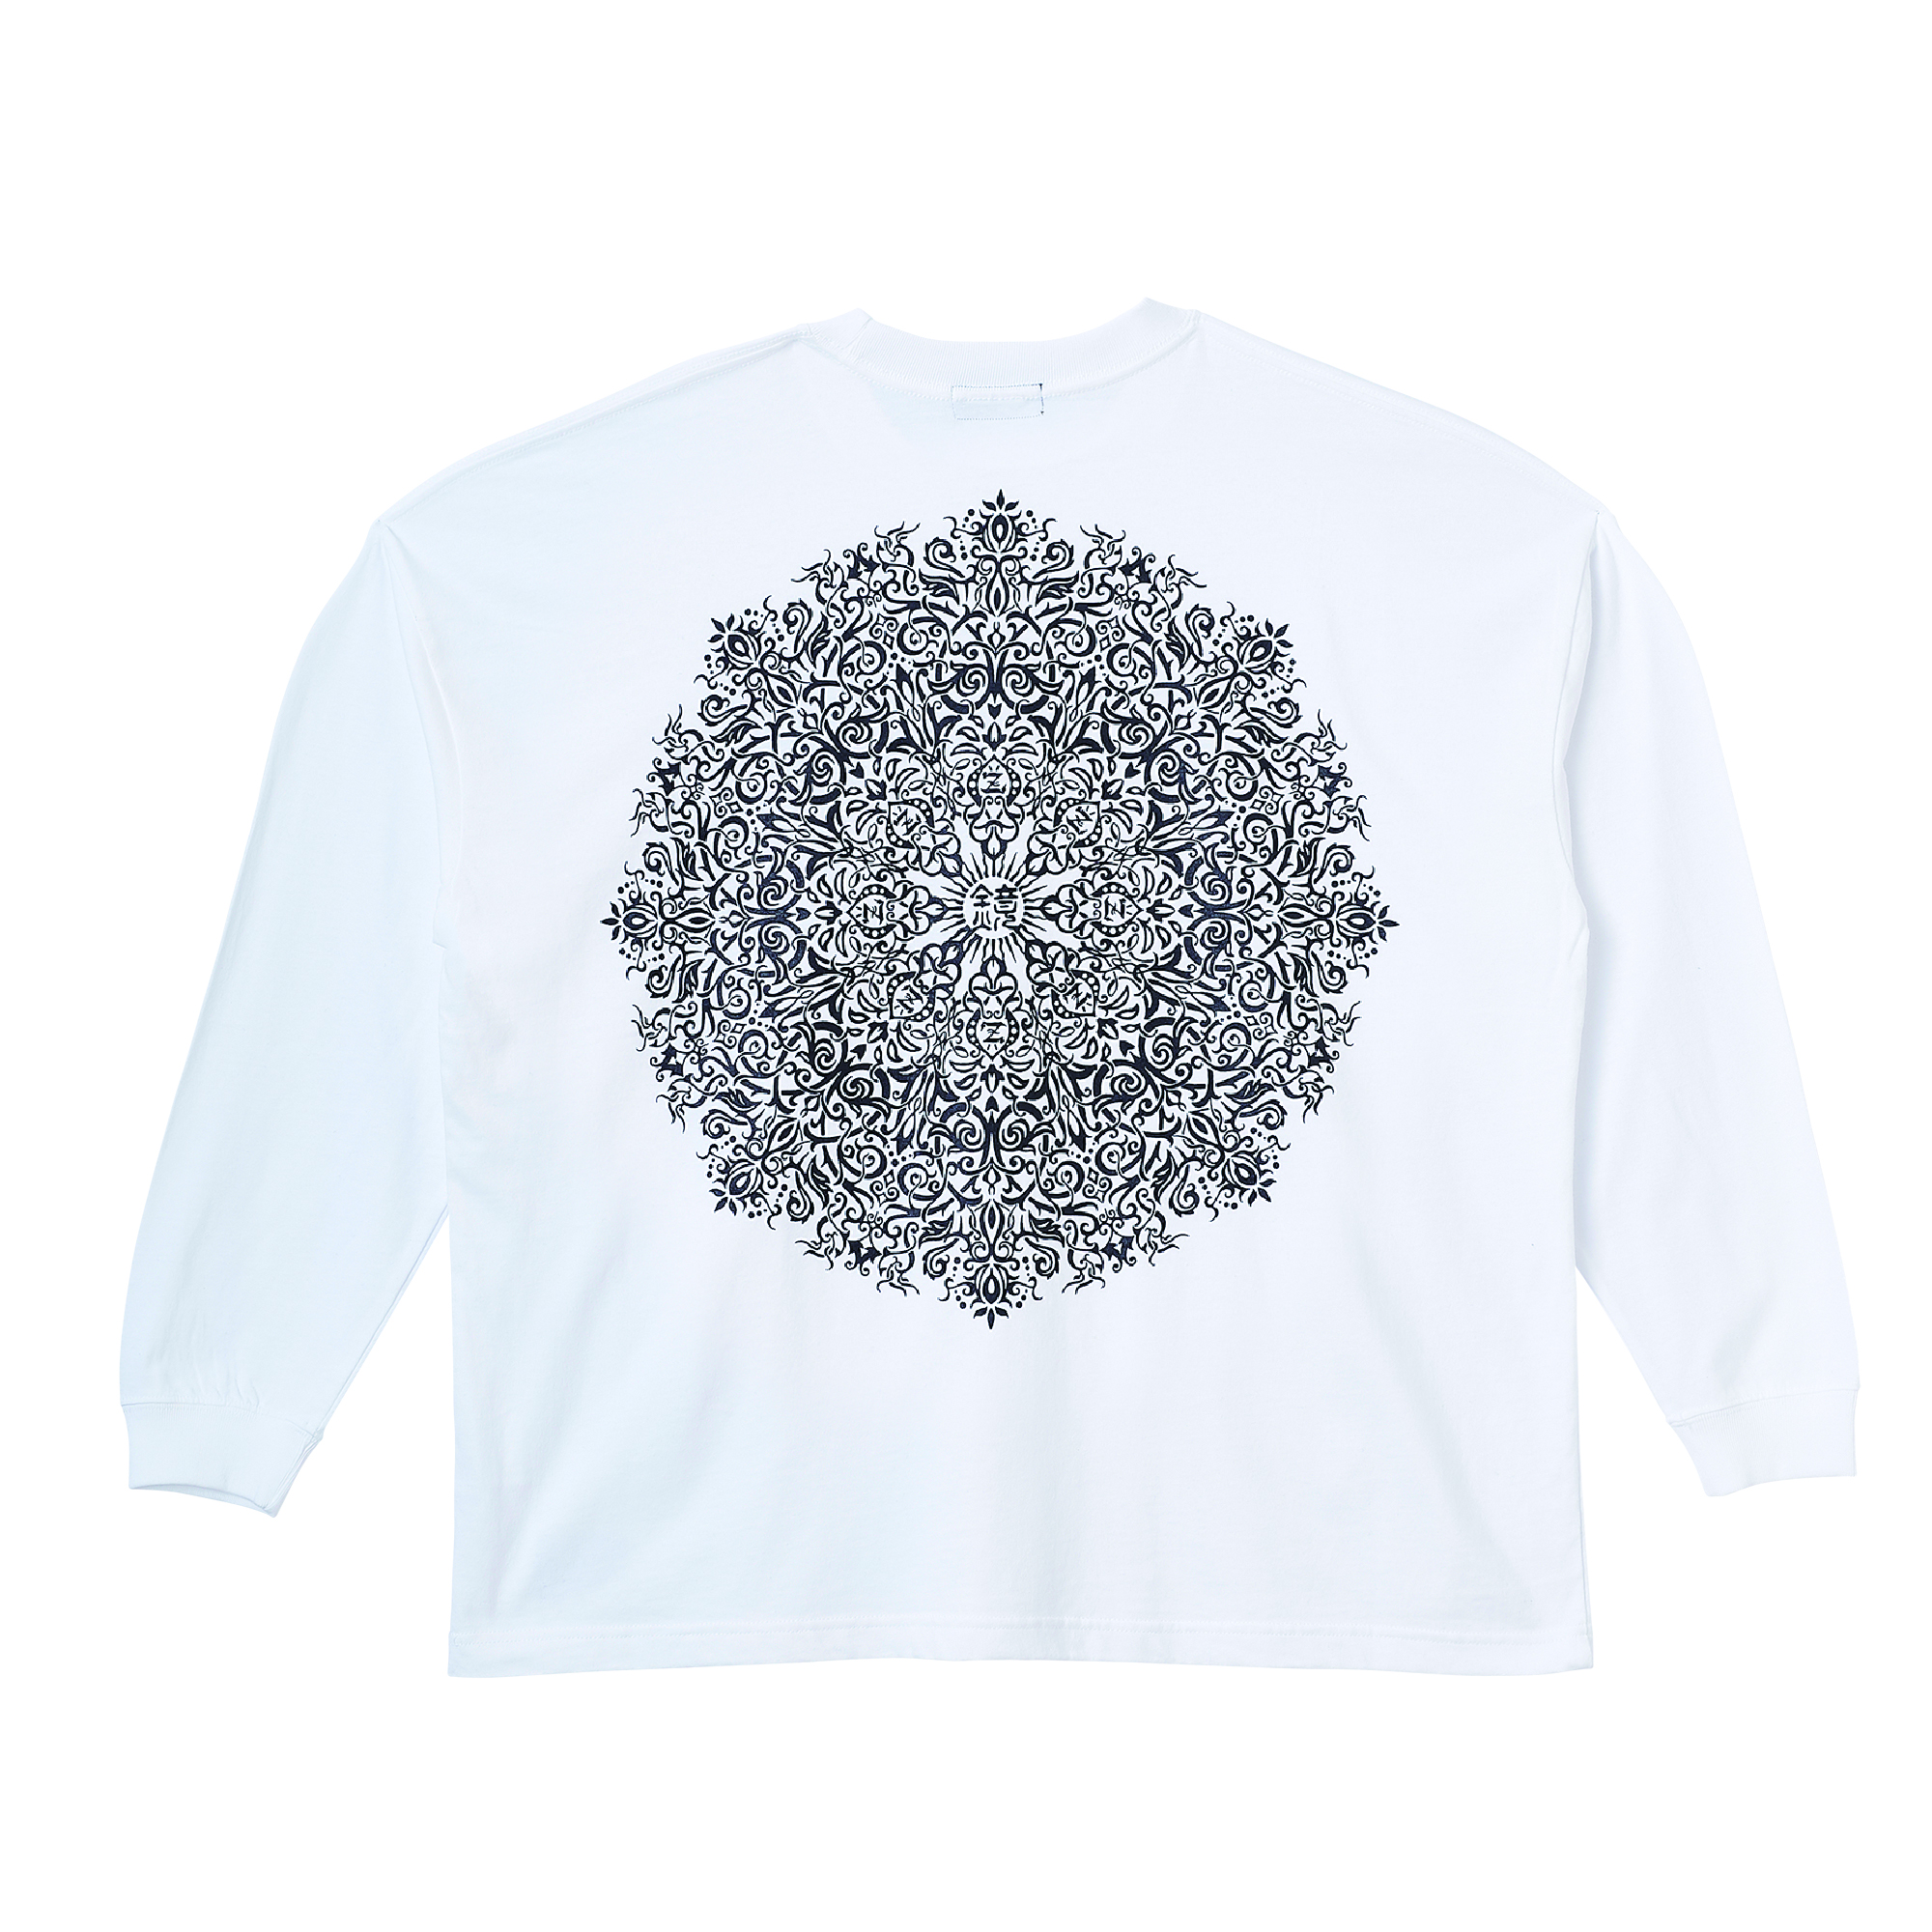 Zephyren(ゼファレン)BIG L/S TEE - VISIONARY / Kaleidoscope - WHITE